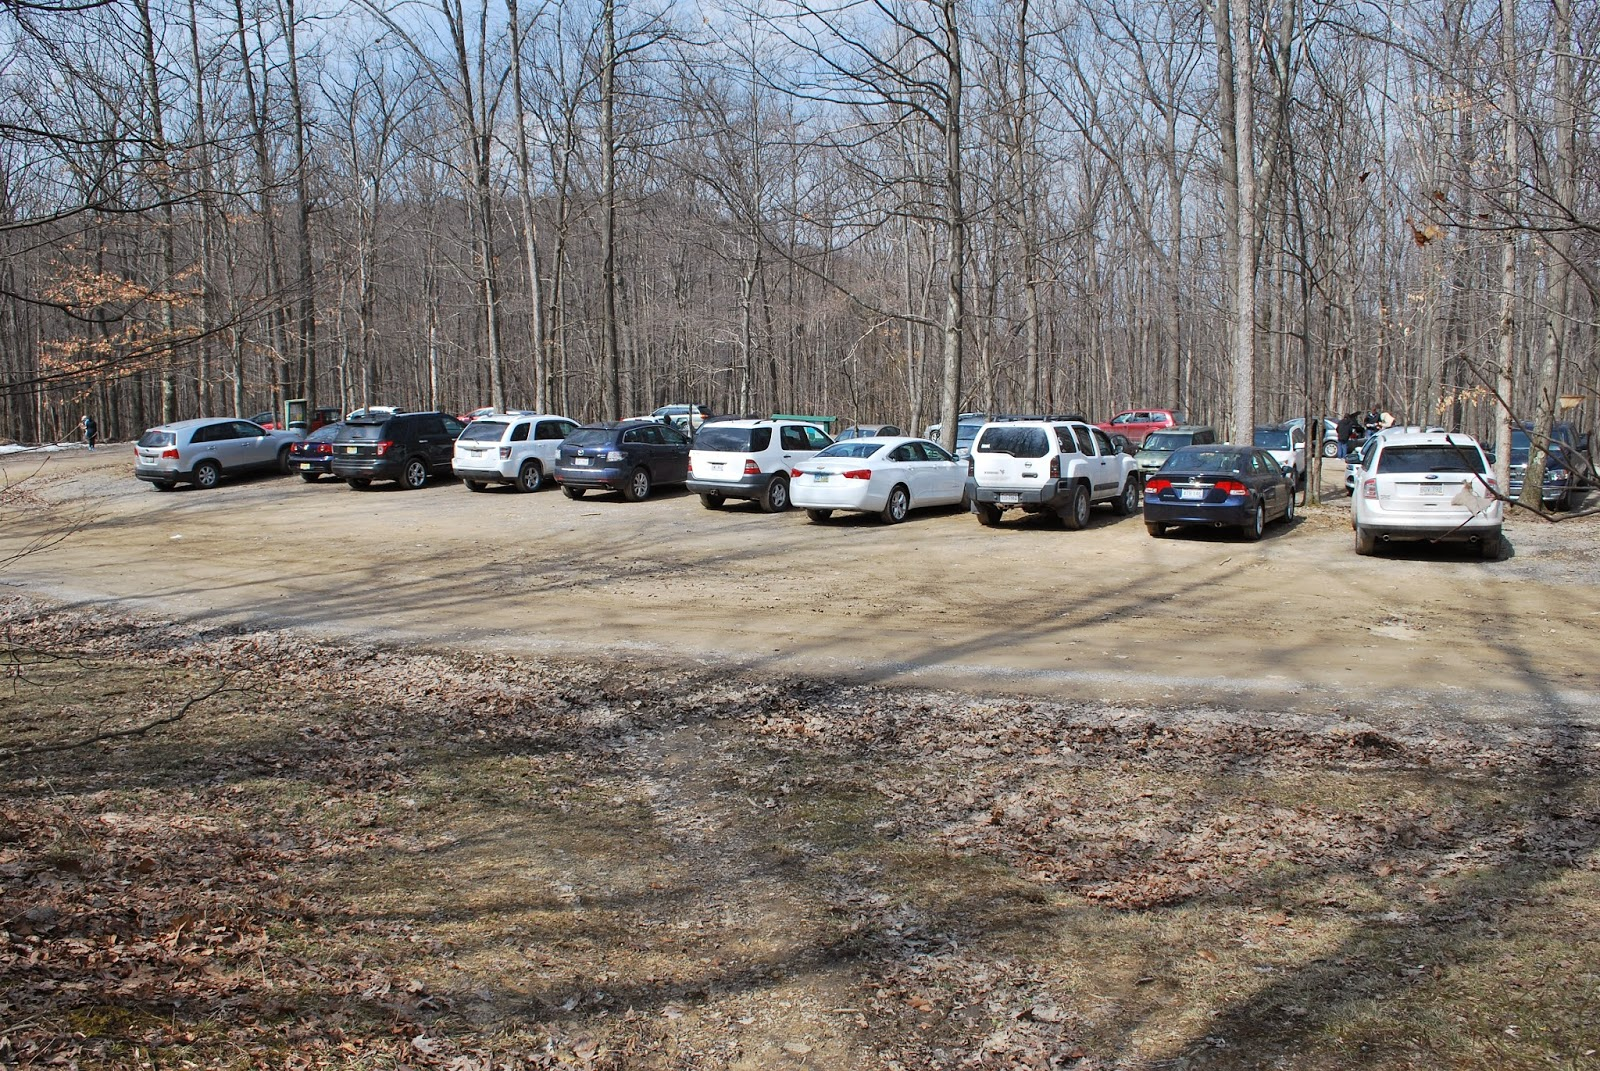 Day Parking Lot at Coopers Rock State Forest